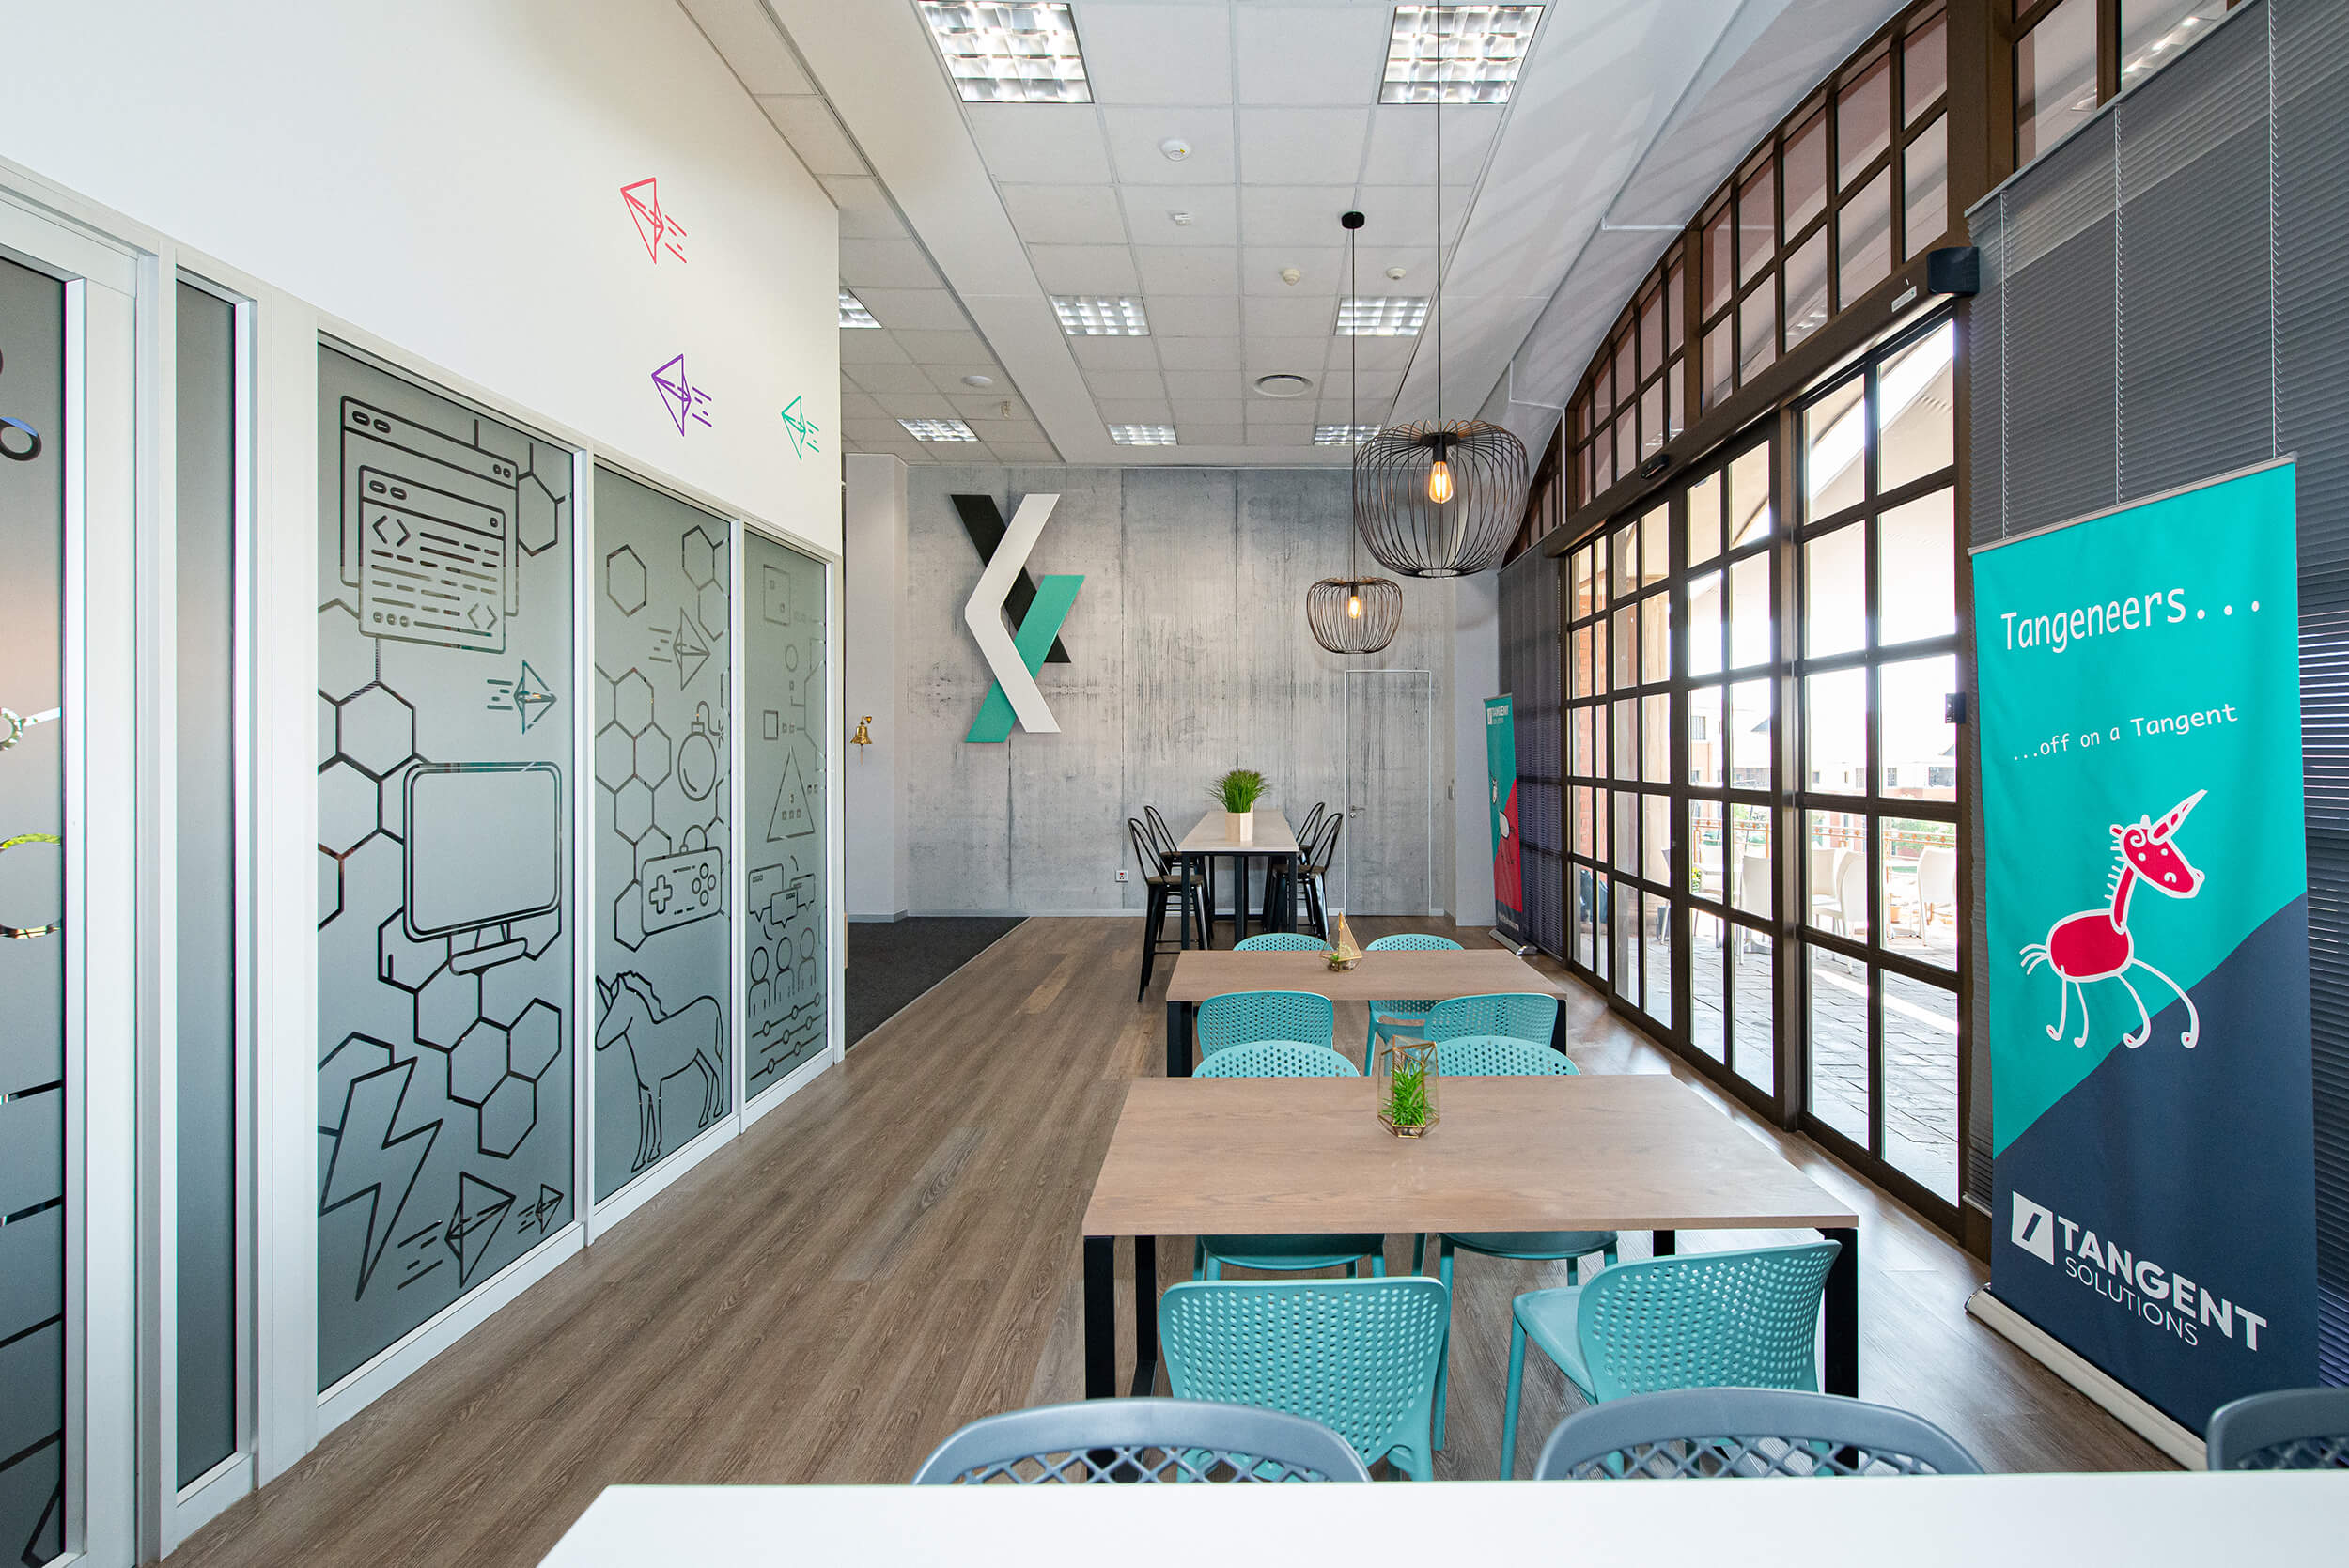 Tangent Solutions - Turnkey Interiors - Corporate Interior Design and Build